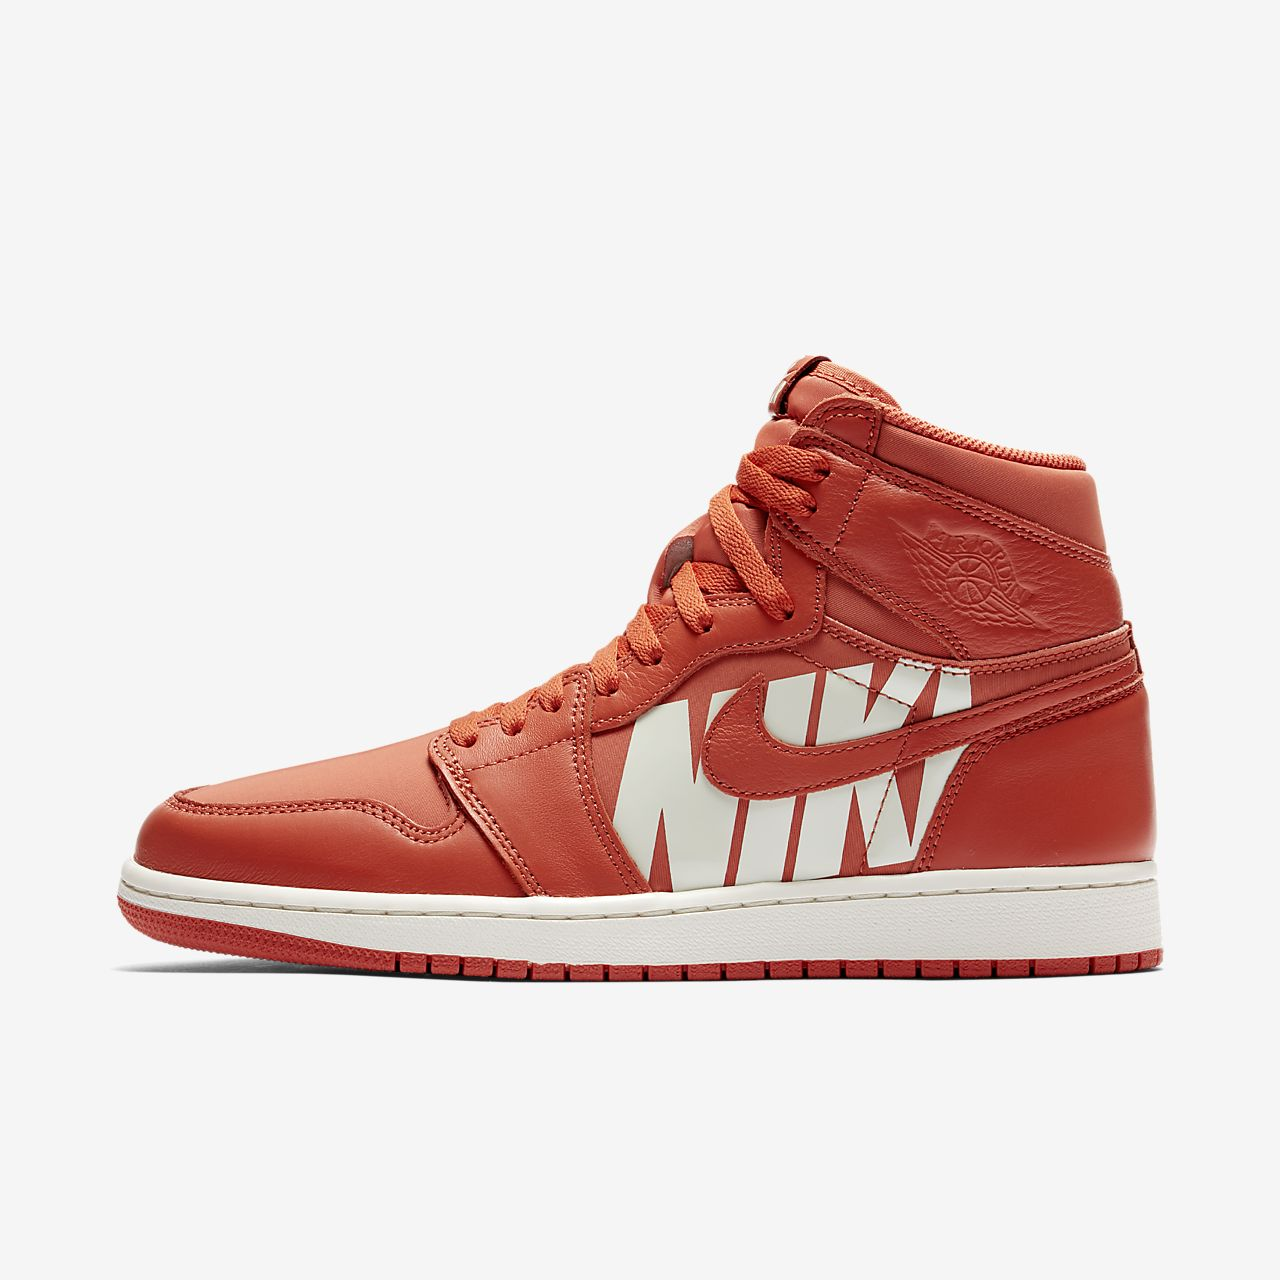 8fead625249 Air Jordan 1 Retro High OG Shoe. Nike.com ZA